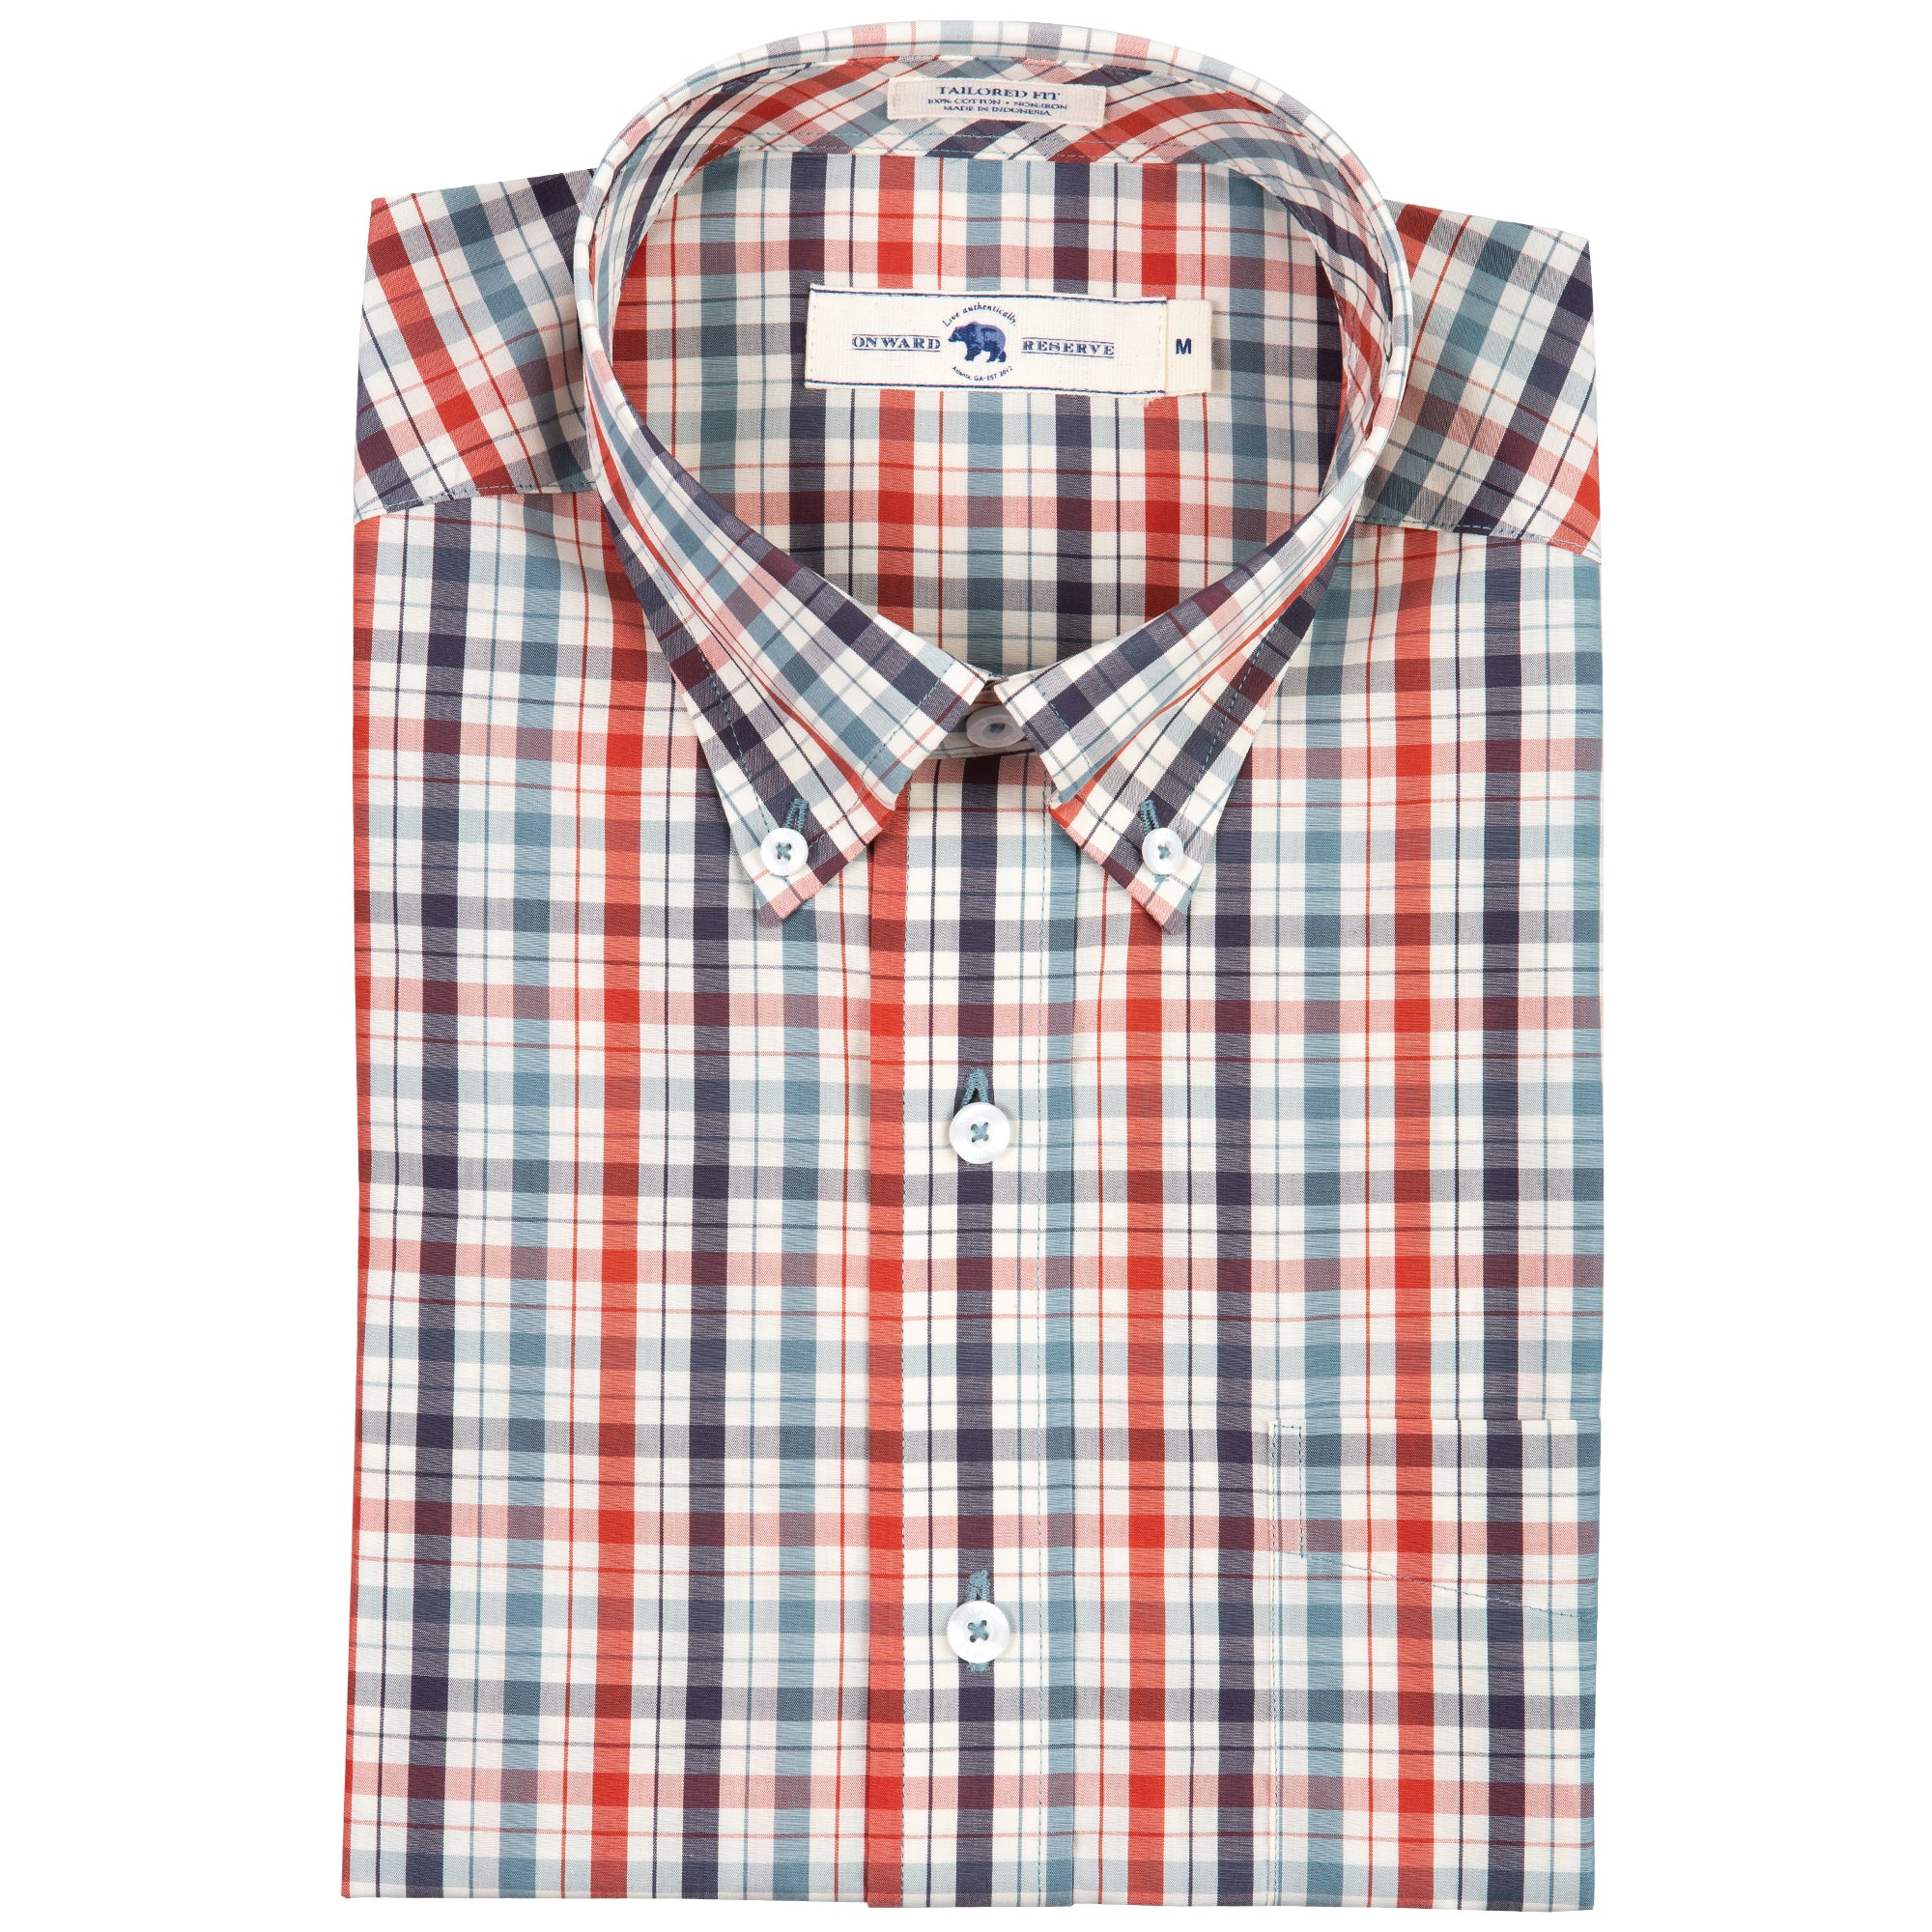 Hunt Tailored Fit Button Down